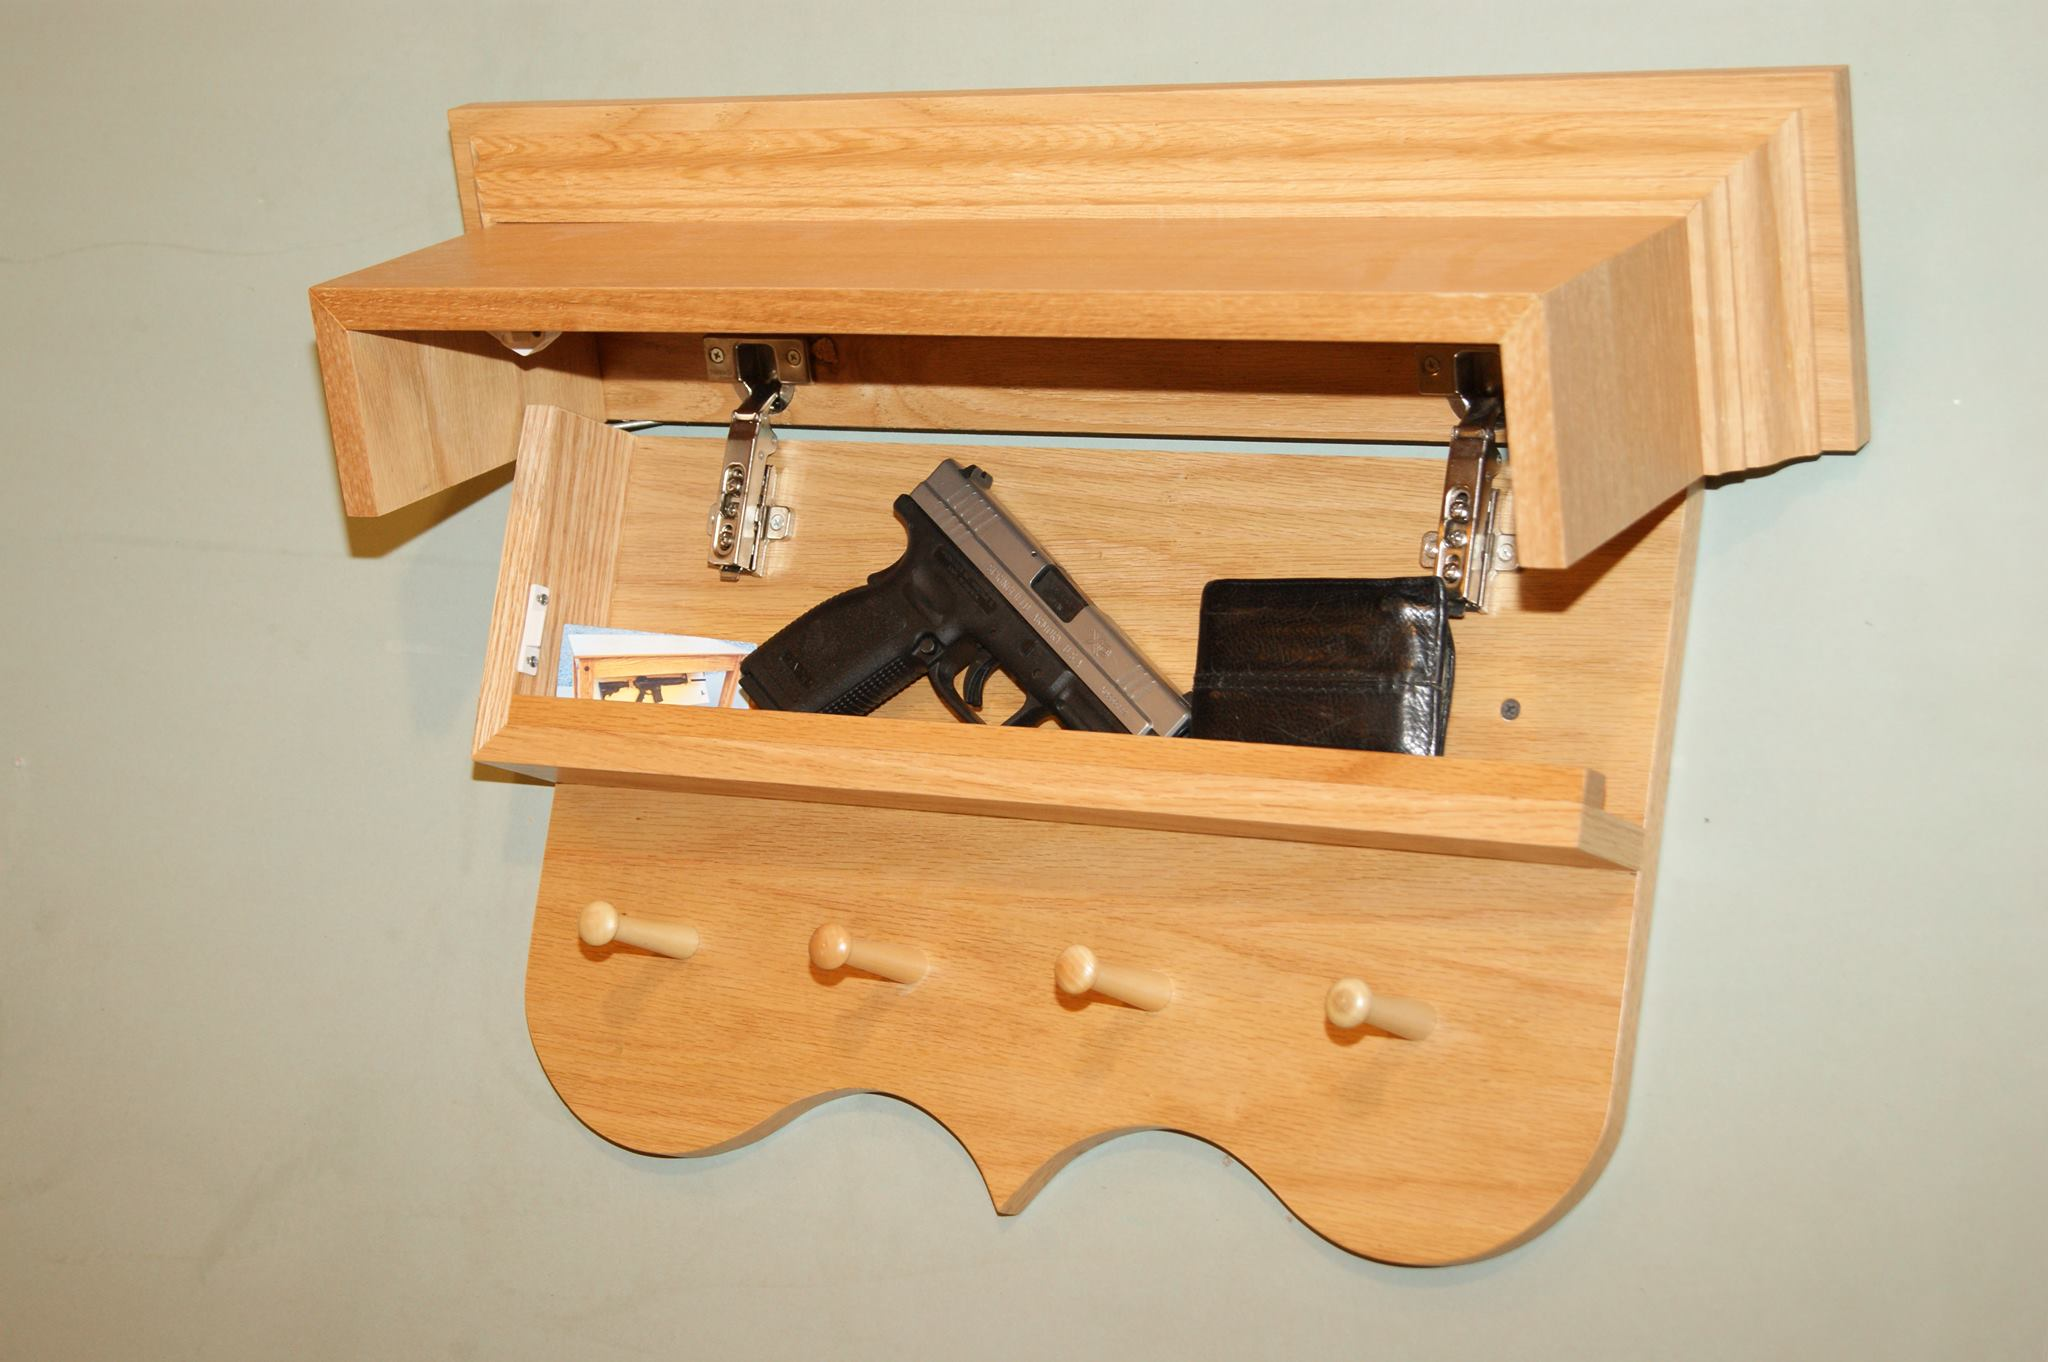 This shelf tilts up to reveal a hidden compartment inside. – Source ...